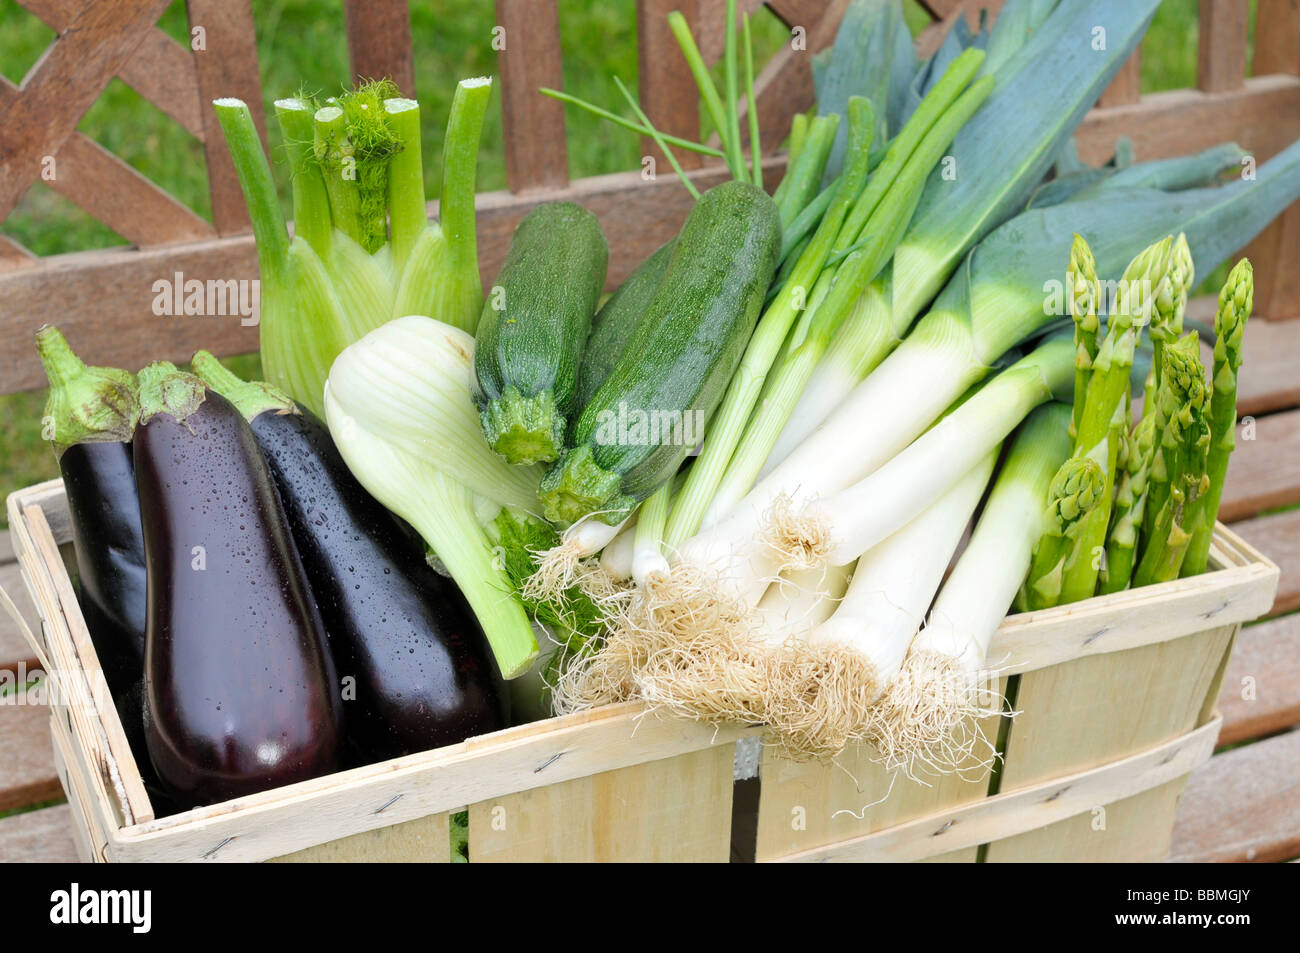 Green asparagus, eggplants, zucchini, spring onions, fennel, leeks in a basket Stock Photo